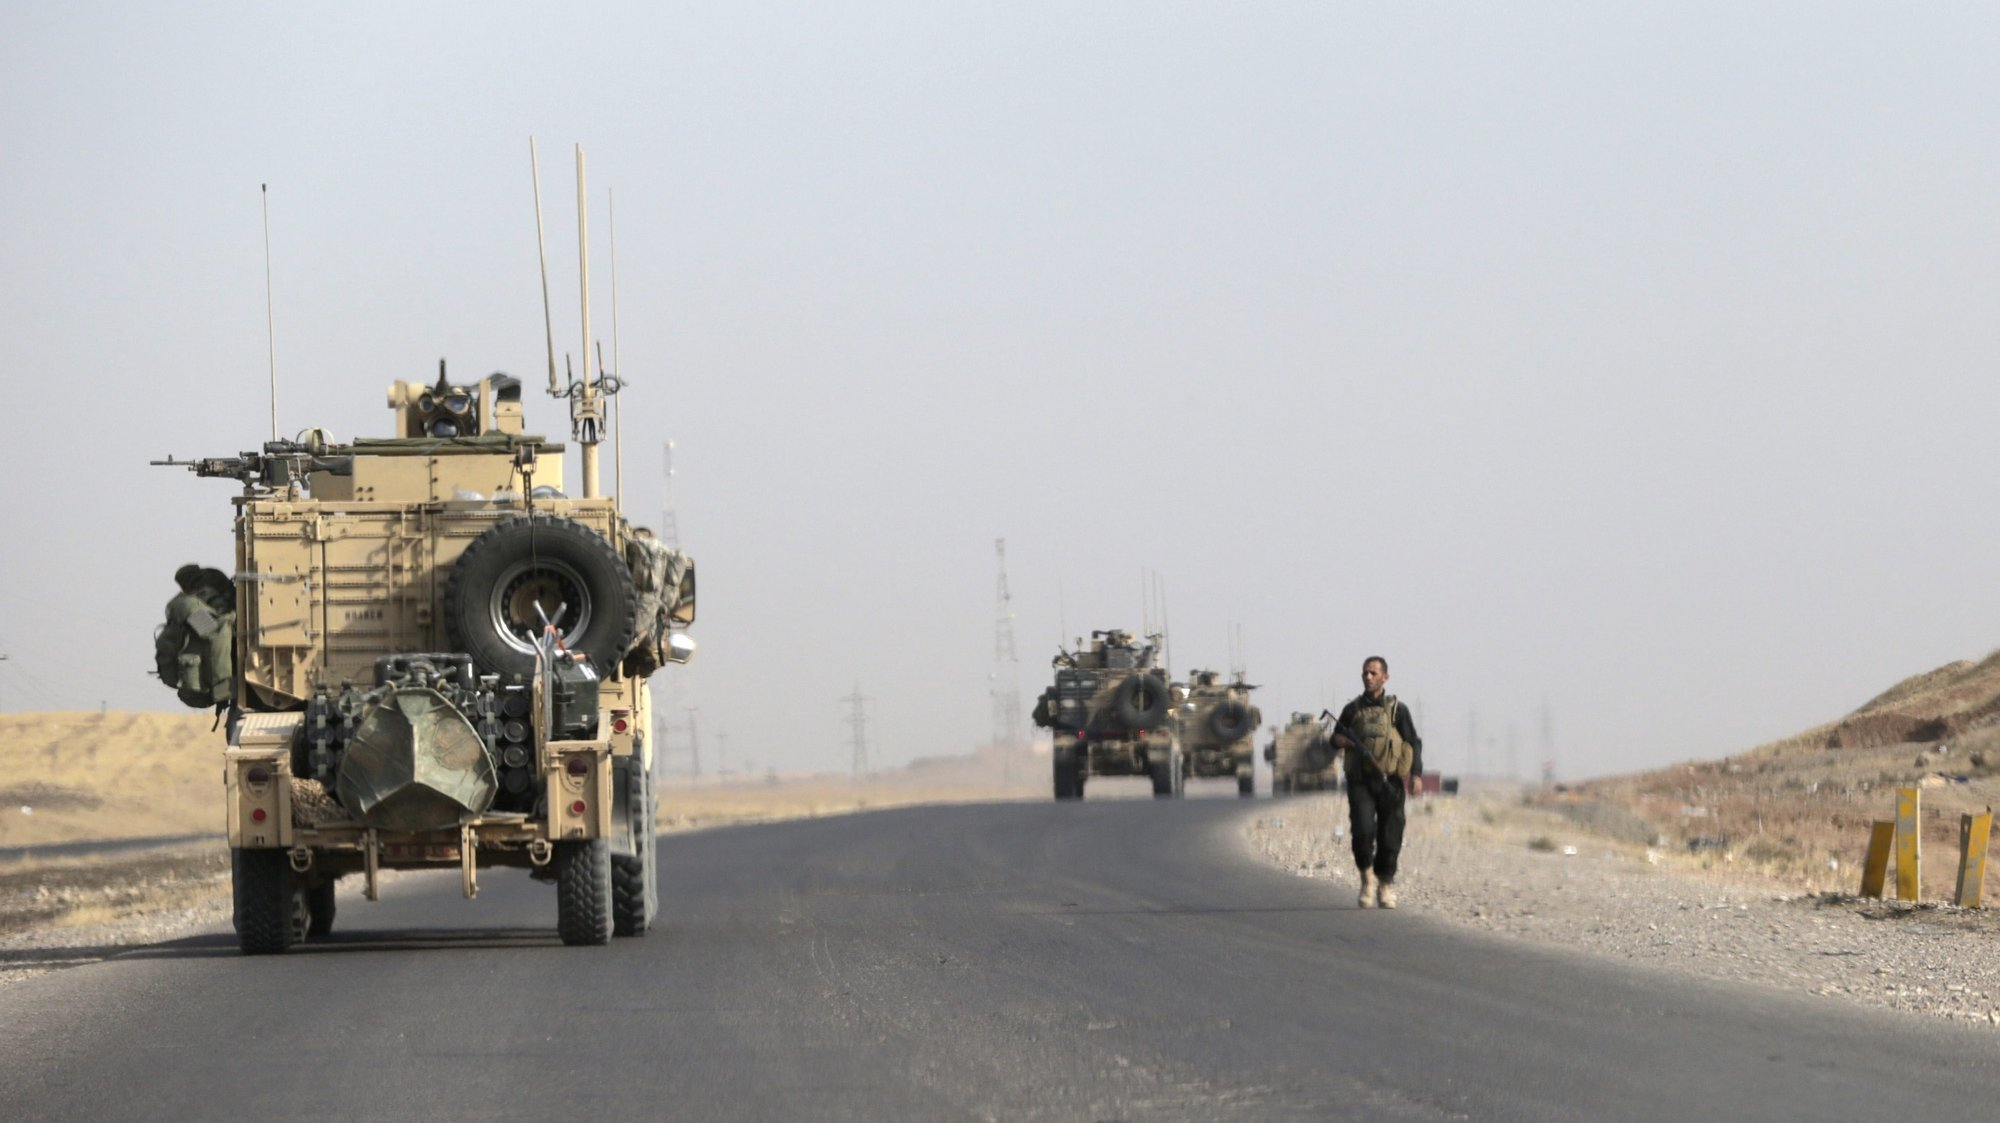 epa05596176 US Army vehicles drive past an Iraqi soldiers  near Khazir some 40km of Erbil, the capital of the region of Kurdistan, Iraq, 21 October 2016. Iraqi army forces announced on 21 October morning that they have taken full control of Bartila, and in an interview with epa, Major General Maan al-Saadi, the Commander of Partial Operation in Bartila said that there were some 100 IS fighters inside the town, 80 of them were killed. Those left have retreated to a village adjacent to Bartila on the way to Mosul and that the Special Forces were now clearing the place of the explosive devices planted by IS.  EPA/AMEL PAIN